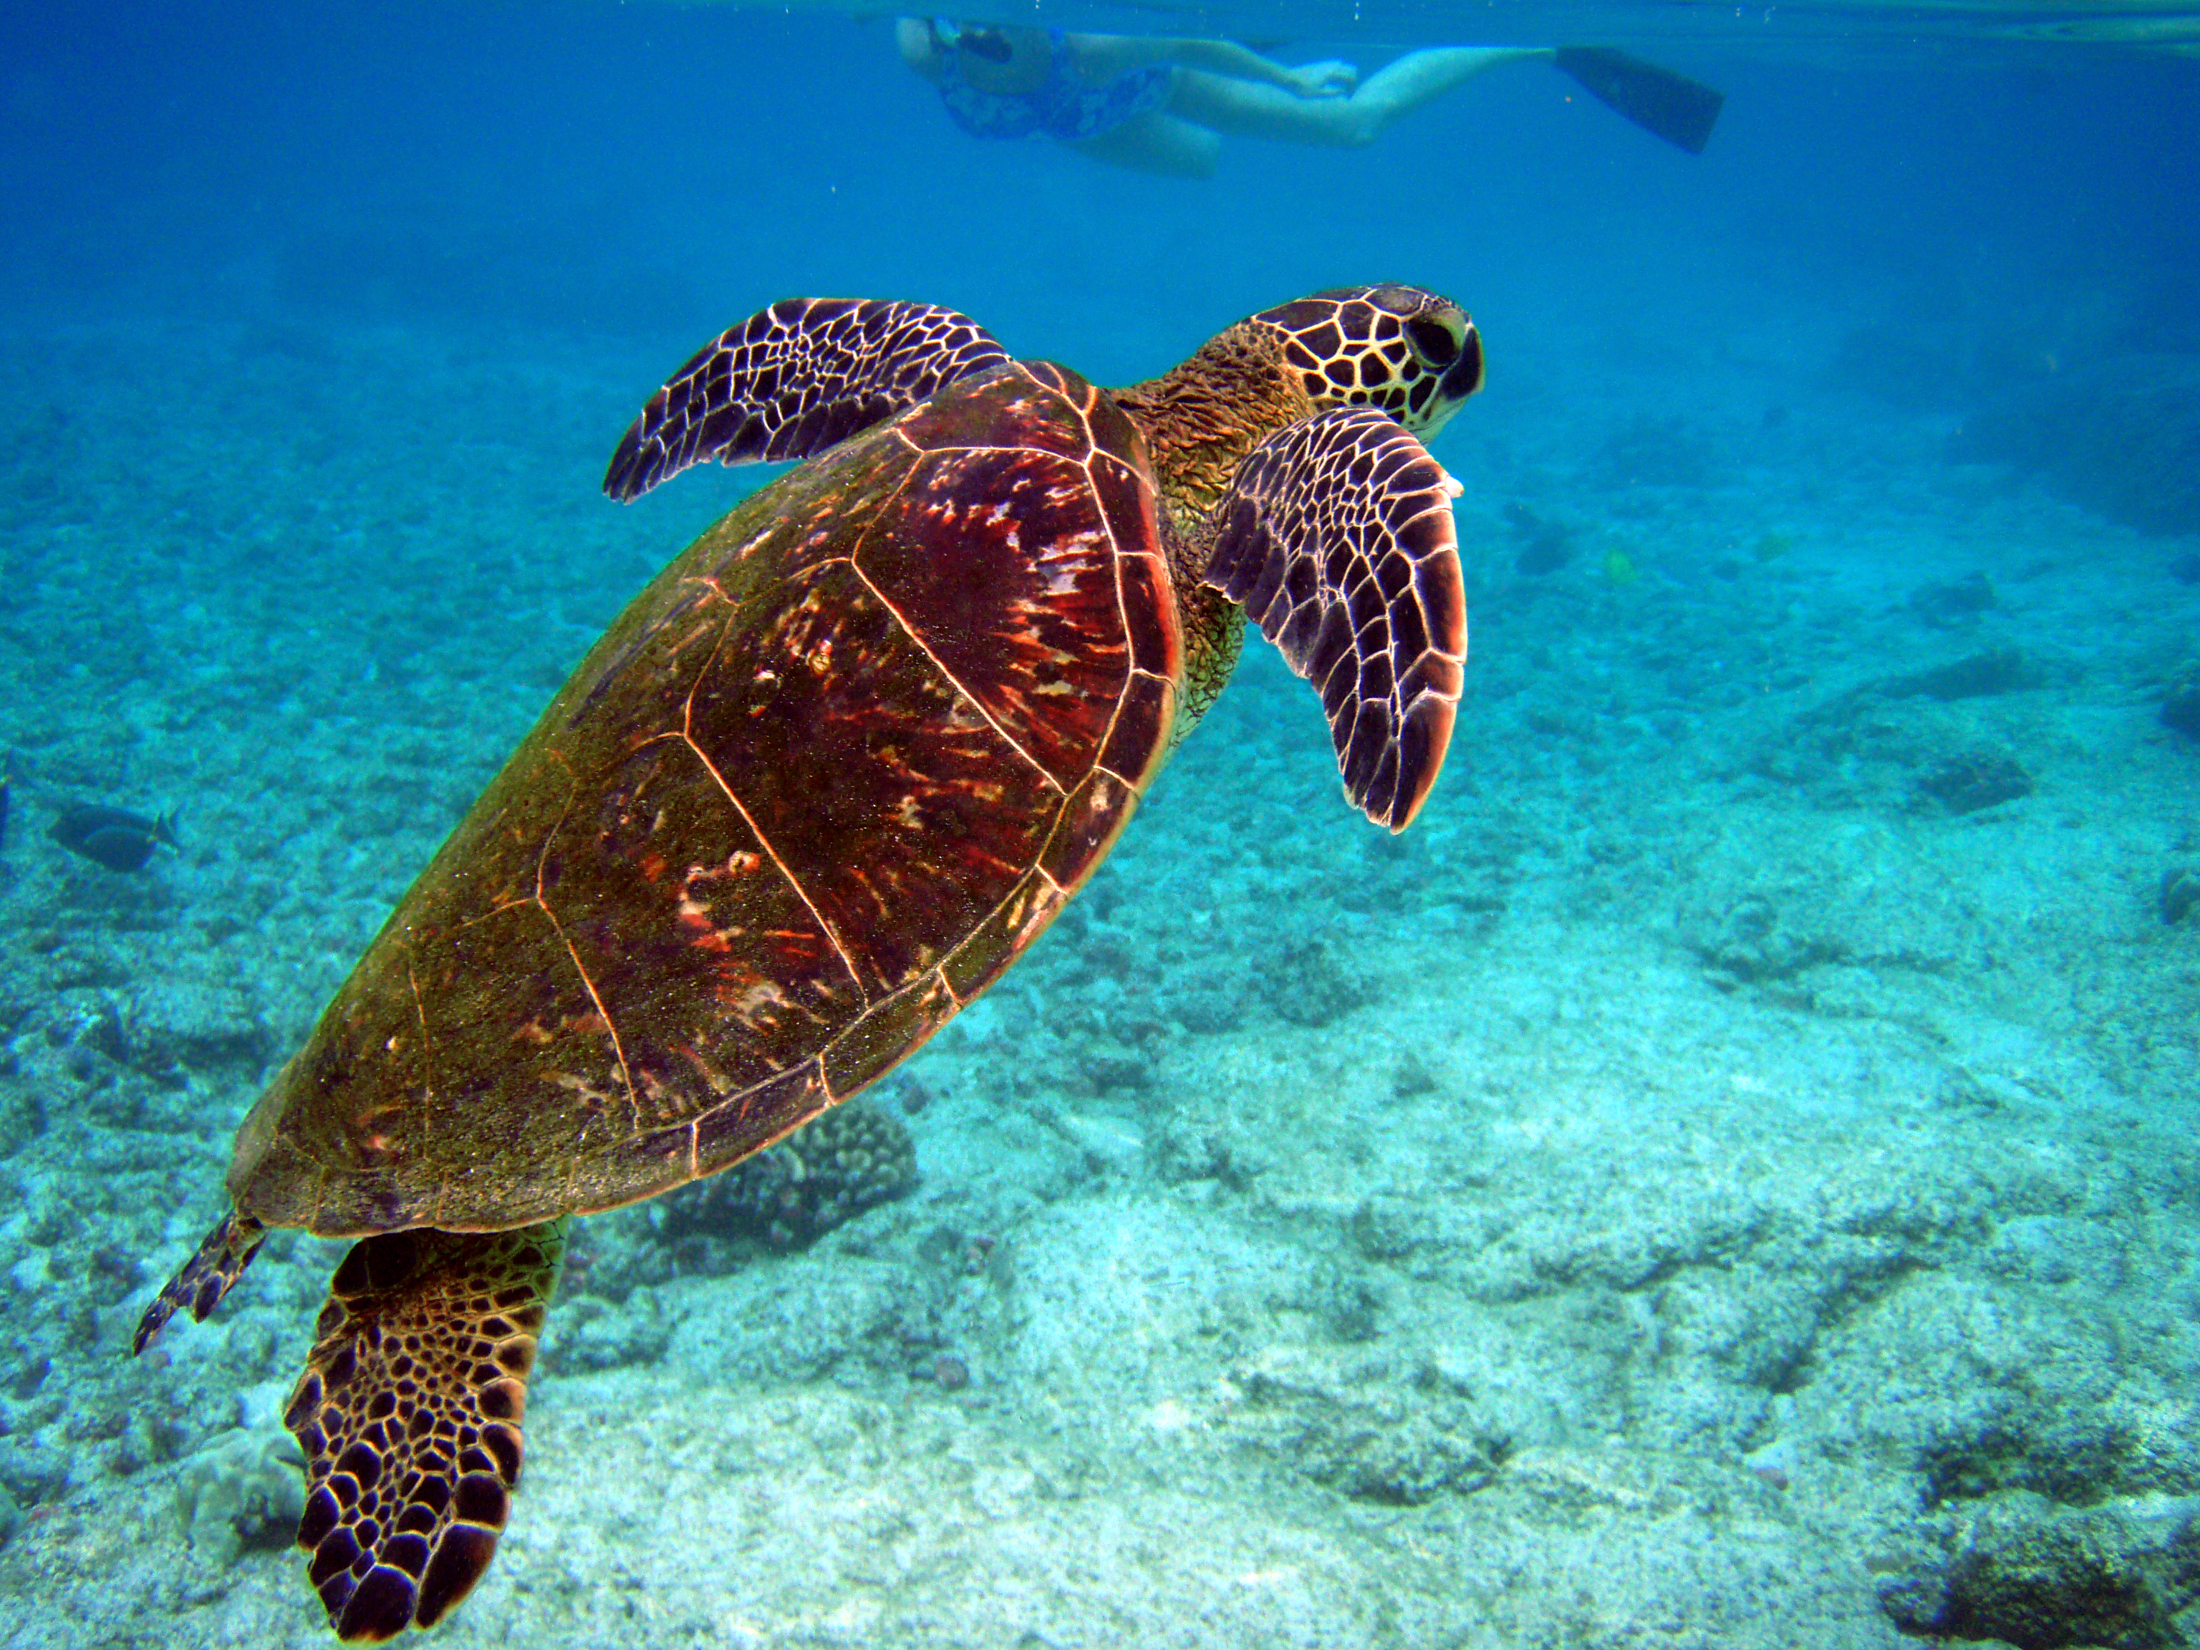 File:Chelonia mydas is going for the air.jpg - Wikipedia, the free ...